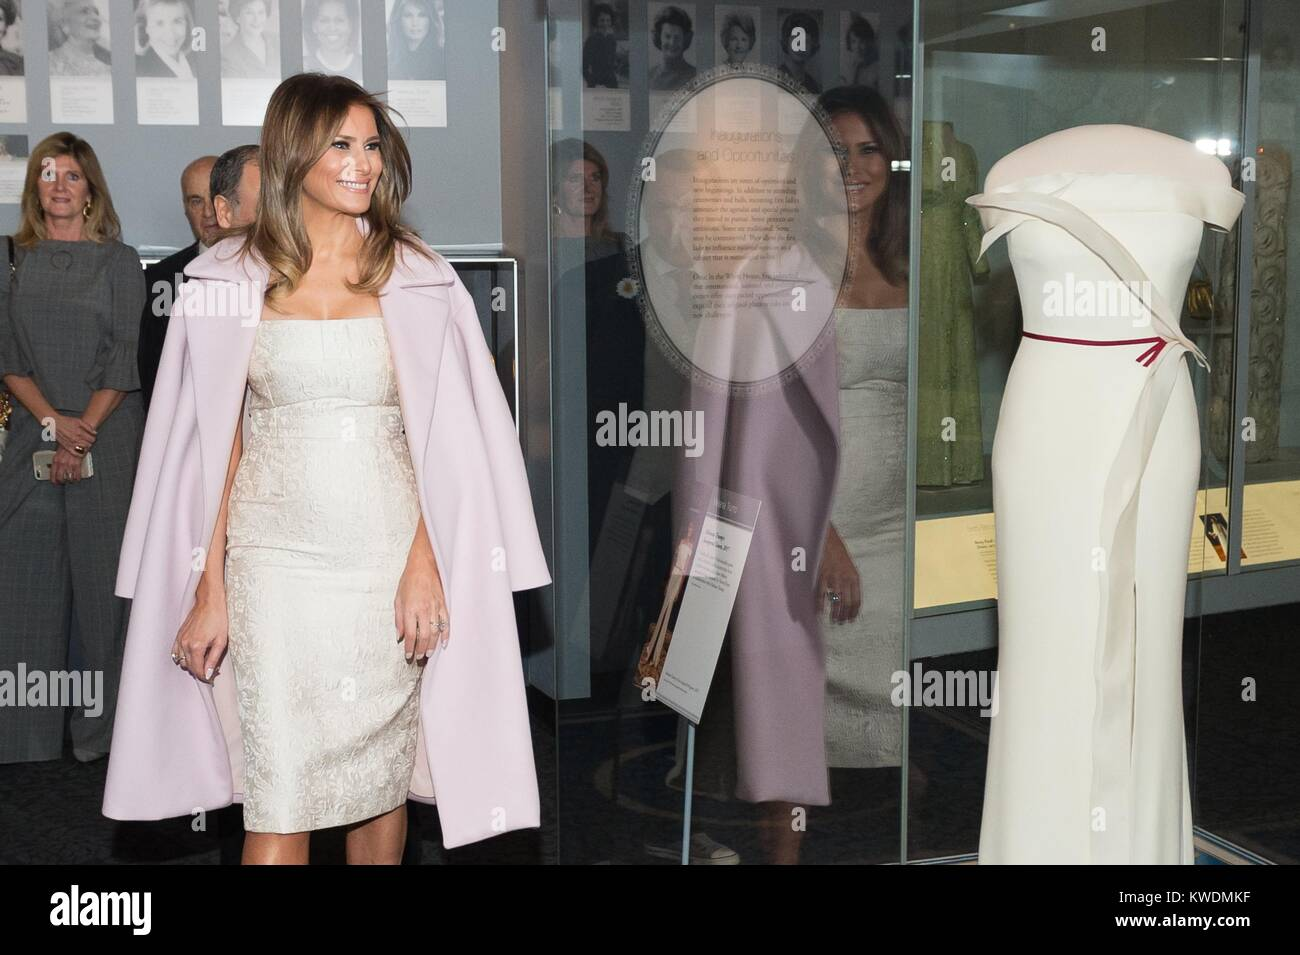 First Lady Melania Trump at the presentation of her inaugural gown to the Smithsonian Museum, Oct. 20, 2017. Herve Stock Photo